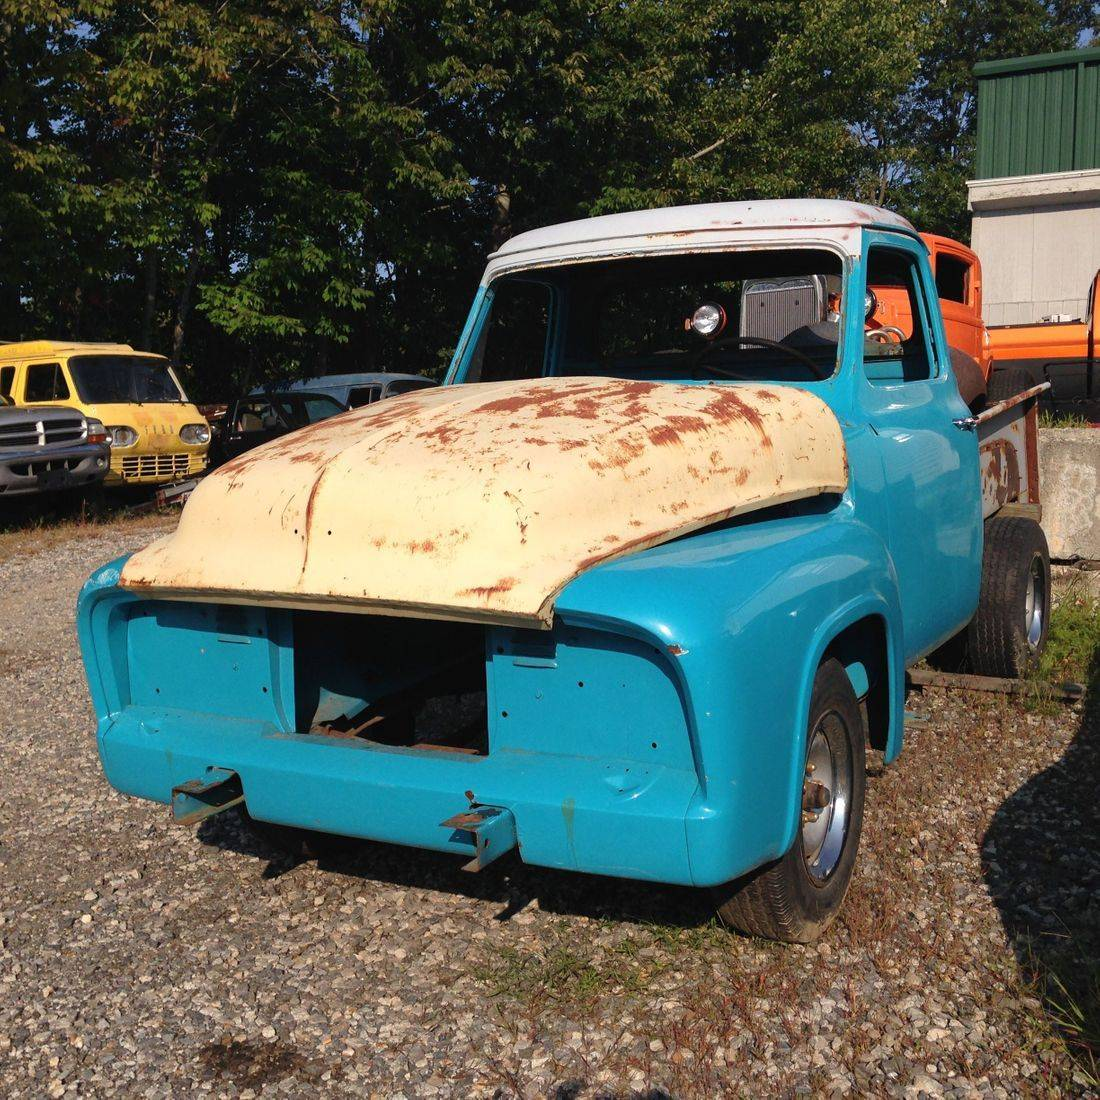 1953 Ford truck, camaro, corvette, old corvette, car show, longhorn, 55 chevy,  performance dodge, harley parts, cheap cars, suv, used cars near me, mechanic near me,  oil change near me, auto repair near me,  car inspection near me, car inspection, mechanics, mechanics near me,  inspection sticker, NH sticker, NH inspection sticker, New hampshire inspection sticker, vehicle inspection near me, auto inspection,  bmw, honda motorcycles, cycle trader, yamaha motorcycles, mustang, ford mustang, bmw motorcycles, motorcycle sticker, indian motorcycles, roadside assistance, towing near me, tow truck near me, tow company near me, tow company, towing service, towig service near me, engine repair, transmission, transmission repair, radiator repair, air conditioner repair, exhaust repair, a/c repair, front end repair, exhaust repair near me, radiator repair near me, ac repair, car ac,  buy tires, tire repair, tire repair near me, tires and wheels, wheels and tires for sale, jeep, jeeps for sale, jeeps for sale near me, used jeeps for sale, used jeeps for sale near me, jeep repair, jeep repair near me, jeep wrangler for sale, jeep cherokee, jeep yj, jeeps yj for sale, jeep wrangler, used jeep wrangler for sale, lifted jeep, lifted jeeps, lifted jeeps fpr sale, jeep cj, jeep tj, ford for sale, chevy for sale, dodge for sale, chevelle for sale, chevelle, masters delux, masters deluxe, bel air, covertable for sale, impala for sale, ford galaxy 500, ford galaxy,  ford galaxie, ford galaxie 500, 1955 chevy, burnout, burnouts, burn out, 1972 vette 454, 454, chevy big block, big block chevys, chevy big blocks, camaro rs-ss, camaro rsss, drag cars, dragcar, drag car, classic car show, jump start, locked out,  Sales and service shop Brentwood NH, Sales and service shop, sales and service, car trouble, repair shop, automotive, car sales, trucks for sale, truck sales, cars for sale, motorcycle repair, motorcycle sales, motorcycles for sale, 4x4 for sale, plows for sale, campers for sale,  Brentwood NH, New Hampshire, cars dealerships Brentwood NH, car dealership Brentwood NH, cars Brentwood New Hampshire, trucks Brentwood NH, Antique cars New Hampshire, classic cars New Hampshire, dealerships near me, used car lot, used car lots, used car dealers, used car dealer, used cars near me,  Cars NH, oil change, 03833, used car, used cars, car, cars, sale, auto, autos, vehicle, dealer, classic cars NH, antiques NH, Inspection station NH, Inspection Brentwood NH, automotive shop Brentwood NH,  autos for sale NH, oil change NH, car tune up NH, family owned dealership, family owned car lot, family owned service shop, service shop, shop, state inspection, NH state inspection, Inspection station, state inspection NH, motion performance, motion performance NH, motion performance LLC,  mechanic, brakes, mechanics, transmissions, auto shop Brentwood, auto shop, transmission problem, brake repair, vehicle, auto, used car, preowned, pre owned, preowned car, used plow, used truck, used motorcycle, old cars, old trucks, automobile, dealer, dealer ship, Motion LLC, Motion, Performance, MP LLC, motionperformance, motionperformancellc, should I buy a used car?, buy a used car, buy a used motorcycle? Exeter used cars, Brentwood used cars, NH used cars, NH dealers, NH, affordable car, buy here pay here, payment on car, chevy car, chevy truck, Harley Davidson, Ford, Buick, Chrysler, used chevy, used 4x4, cheap car, cheap truck, cheap motorcycle, tow, tow truck, towing, 24 hour towing, car inspection, where car I get my car inspected?, where can I get my truck inspected?, where can I my motorcycle inspected?, where can I get my motorcycle inspected, where can I get my car inspected, NH inspections, commercial vehicle, CDL, New car inspection, engine, rebuild, custom, car restoration, antique restoration, truck restoration,